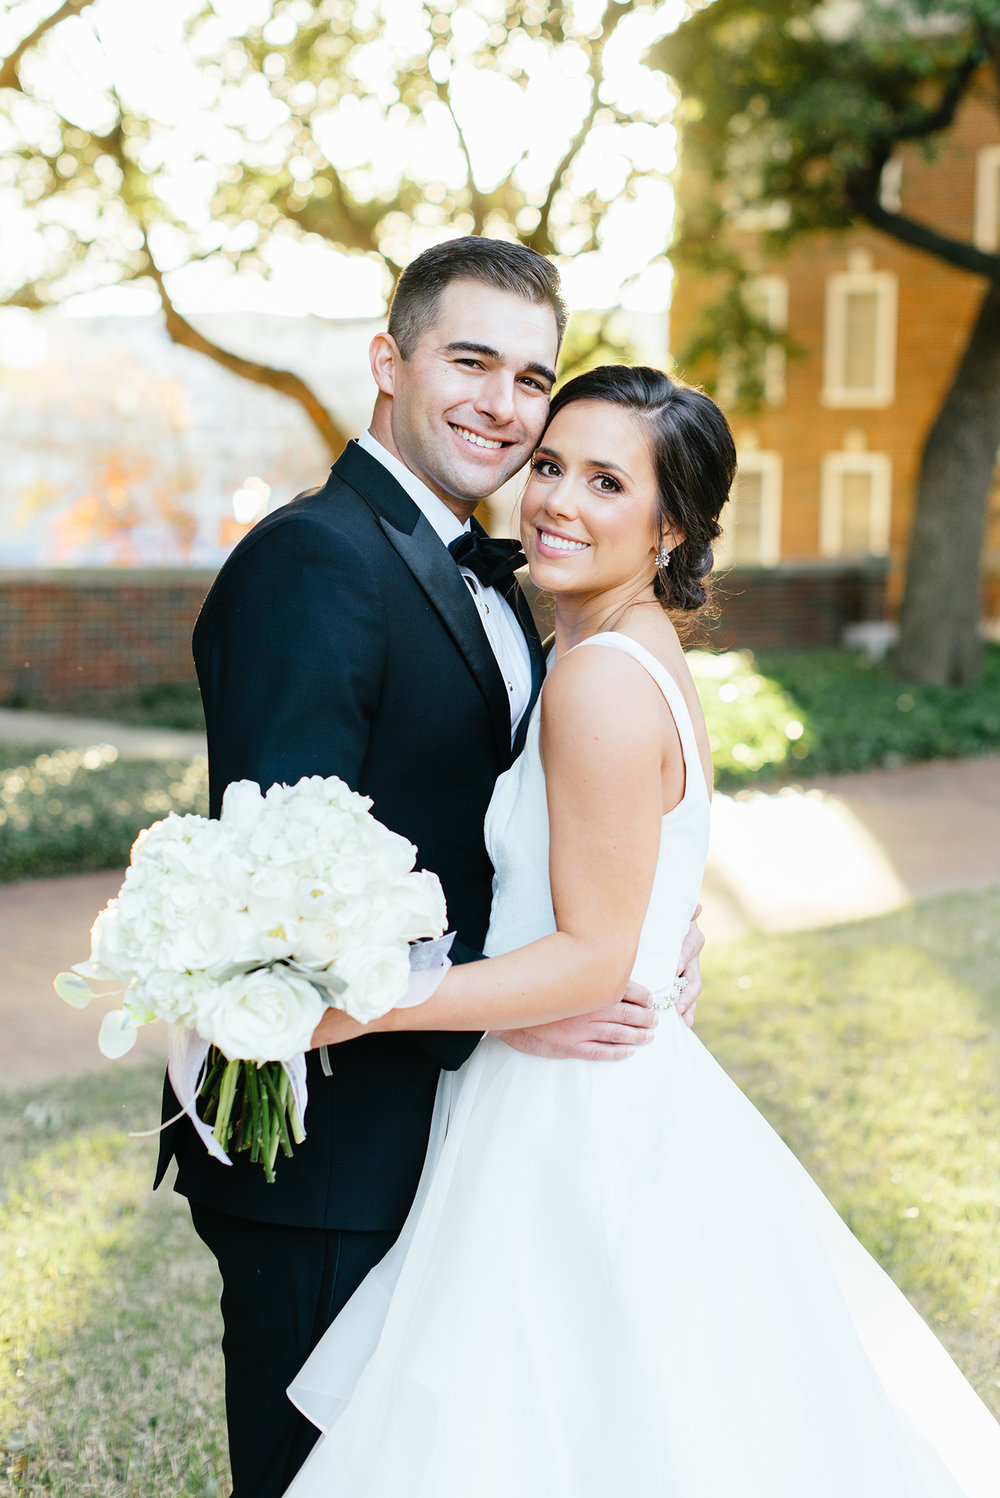 MattAndJulieWeddings-PerkensChapelWedding-RoomonMain-Alyssa+Chris223.jpg